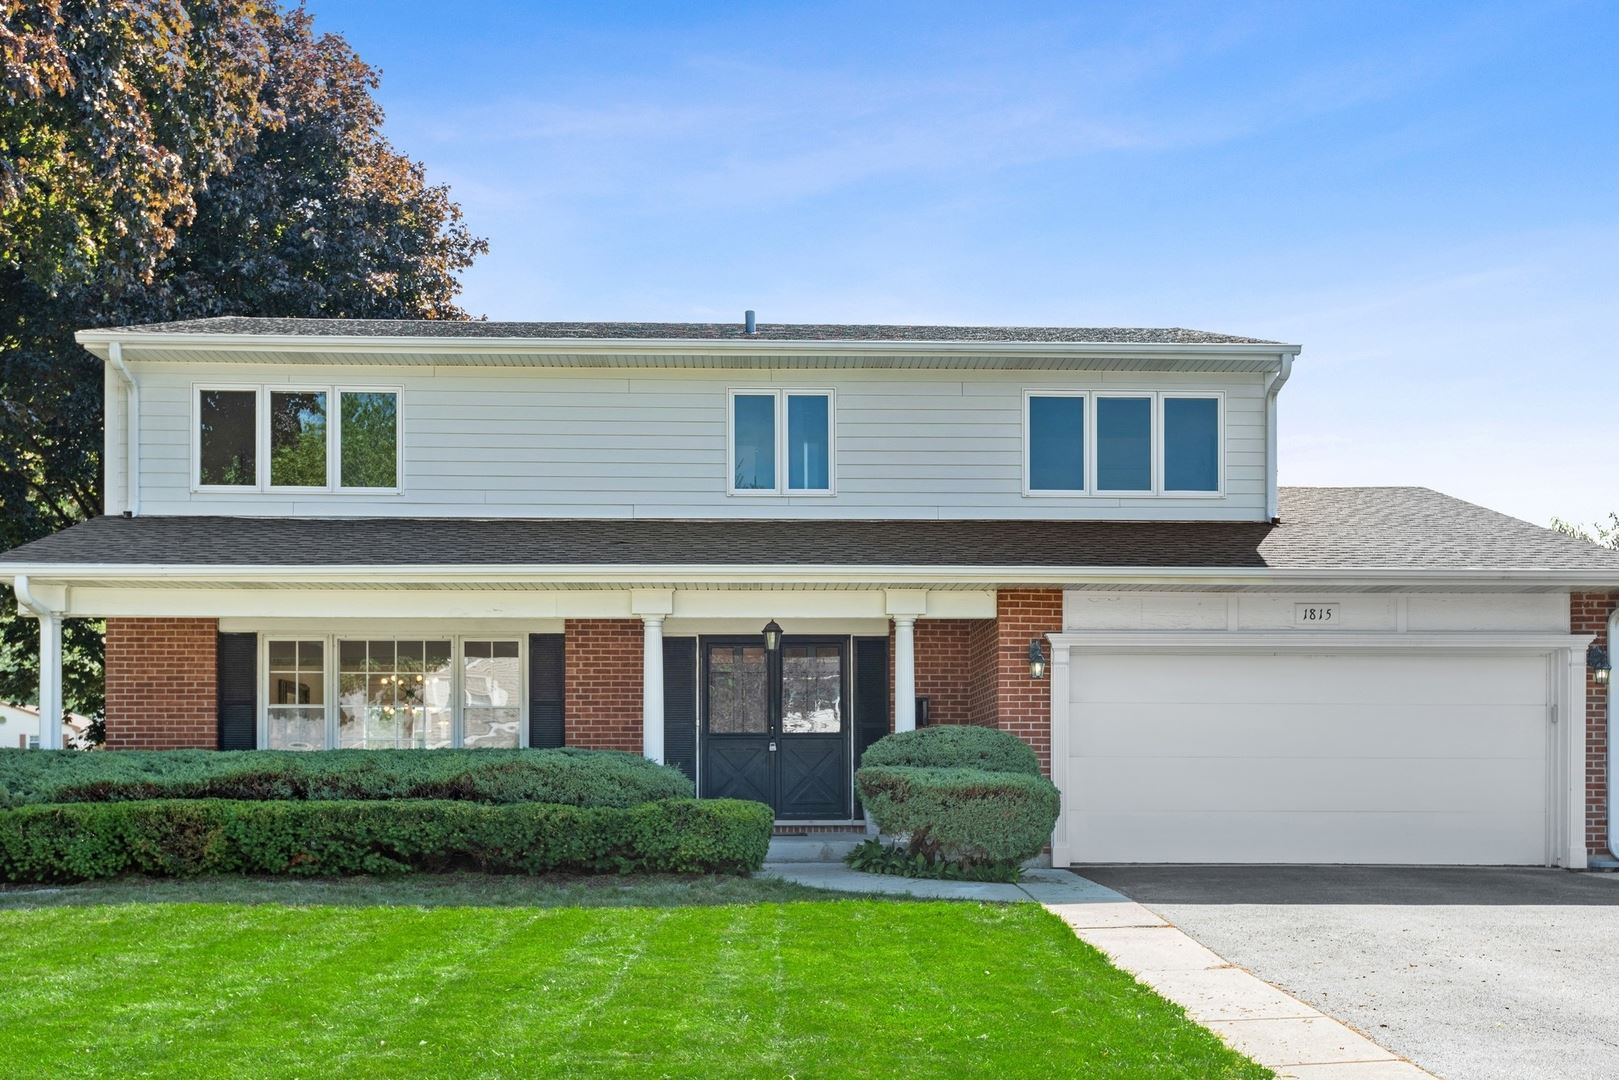 1815 S FERNANDEZ Avenue, Arlington Heights, IL 60005 - #: 10809999